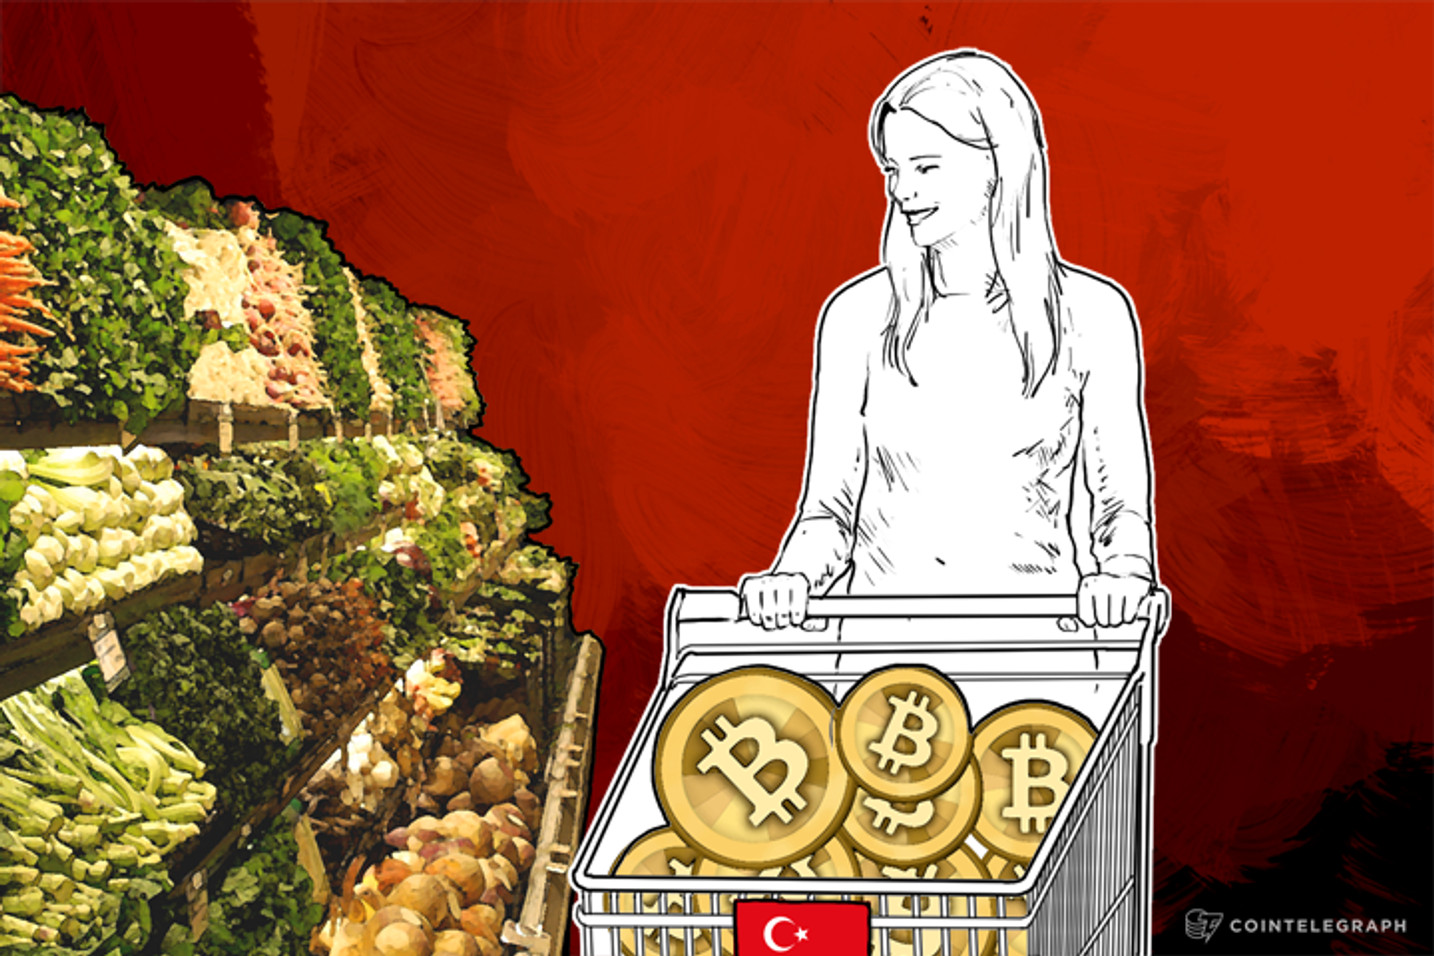 Bitupcard Program Enables Customers to Buy Bitcoin in Turkish Retail Stores